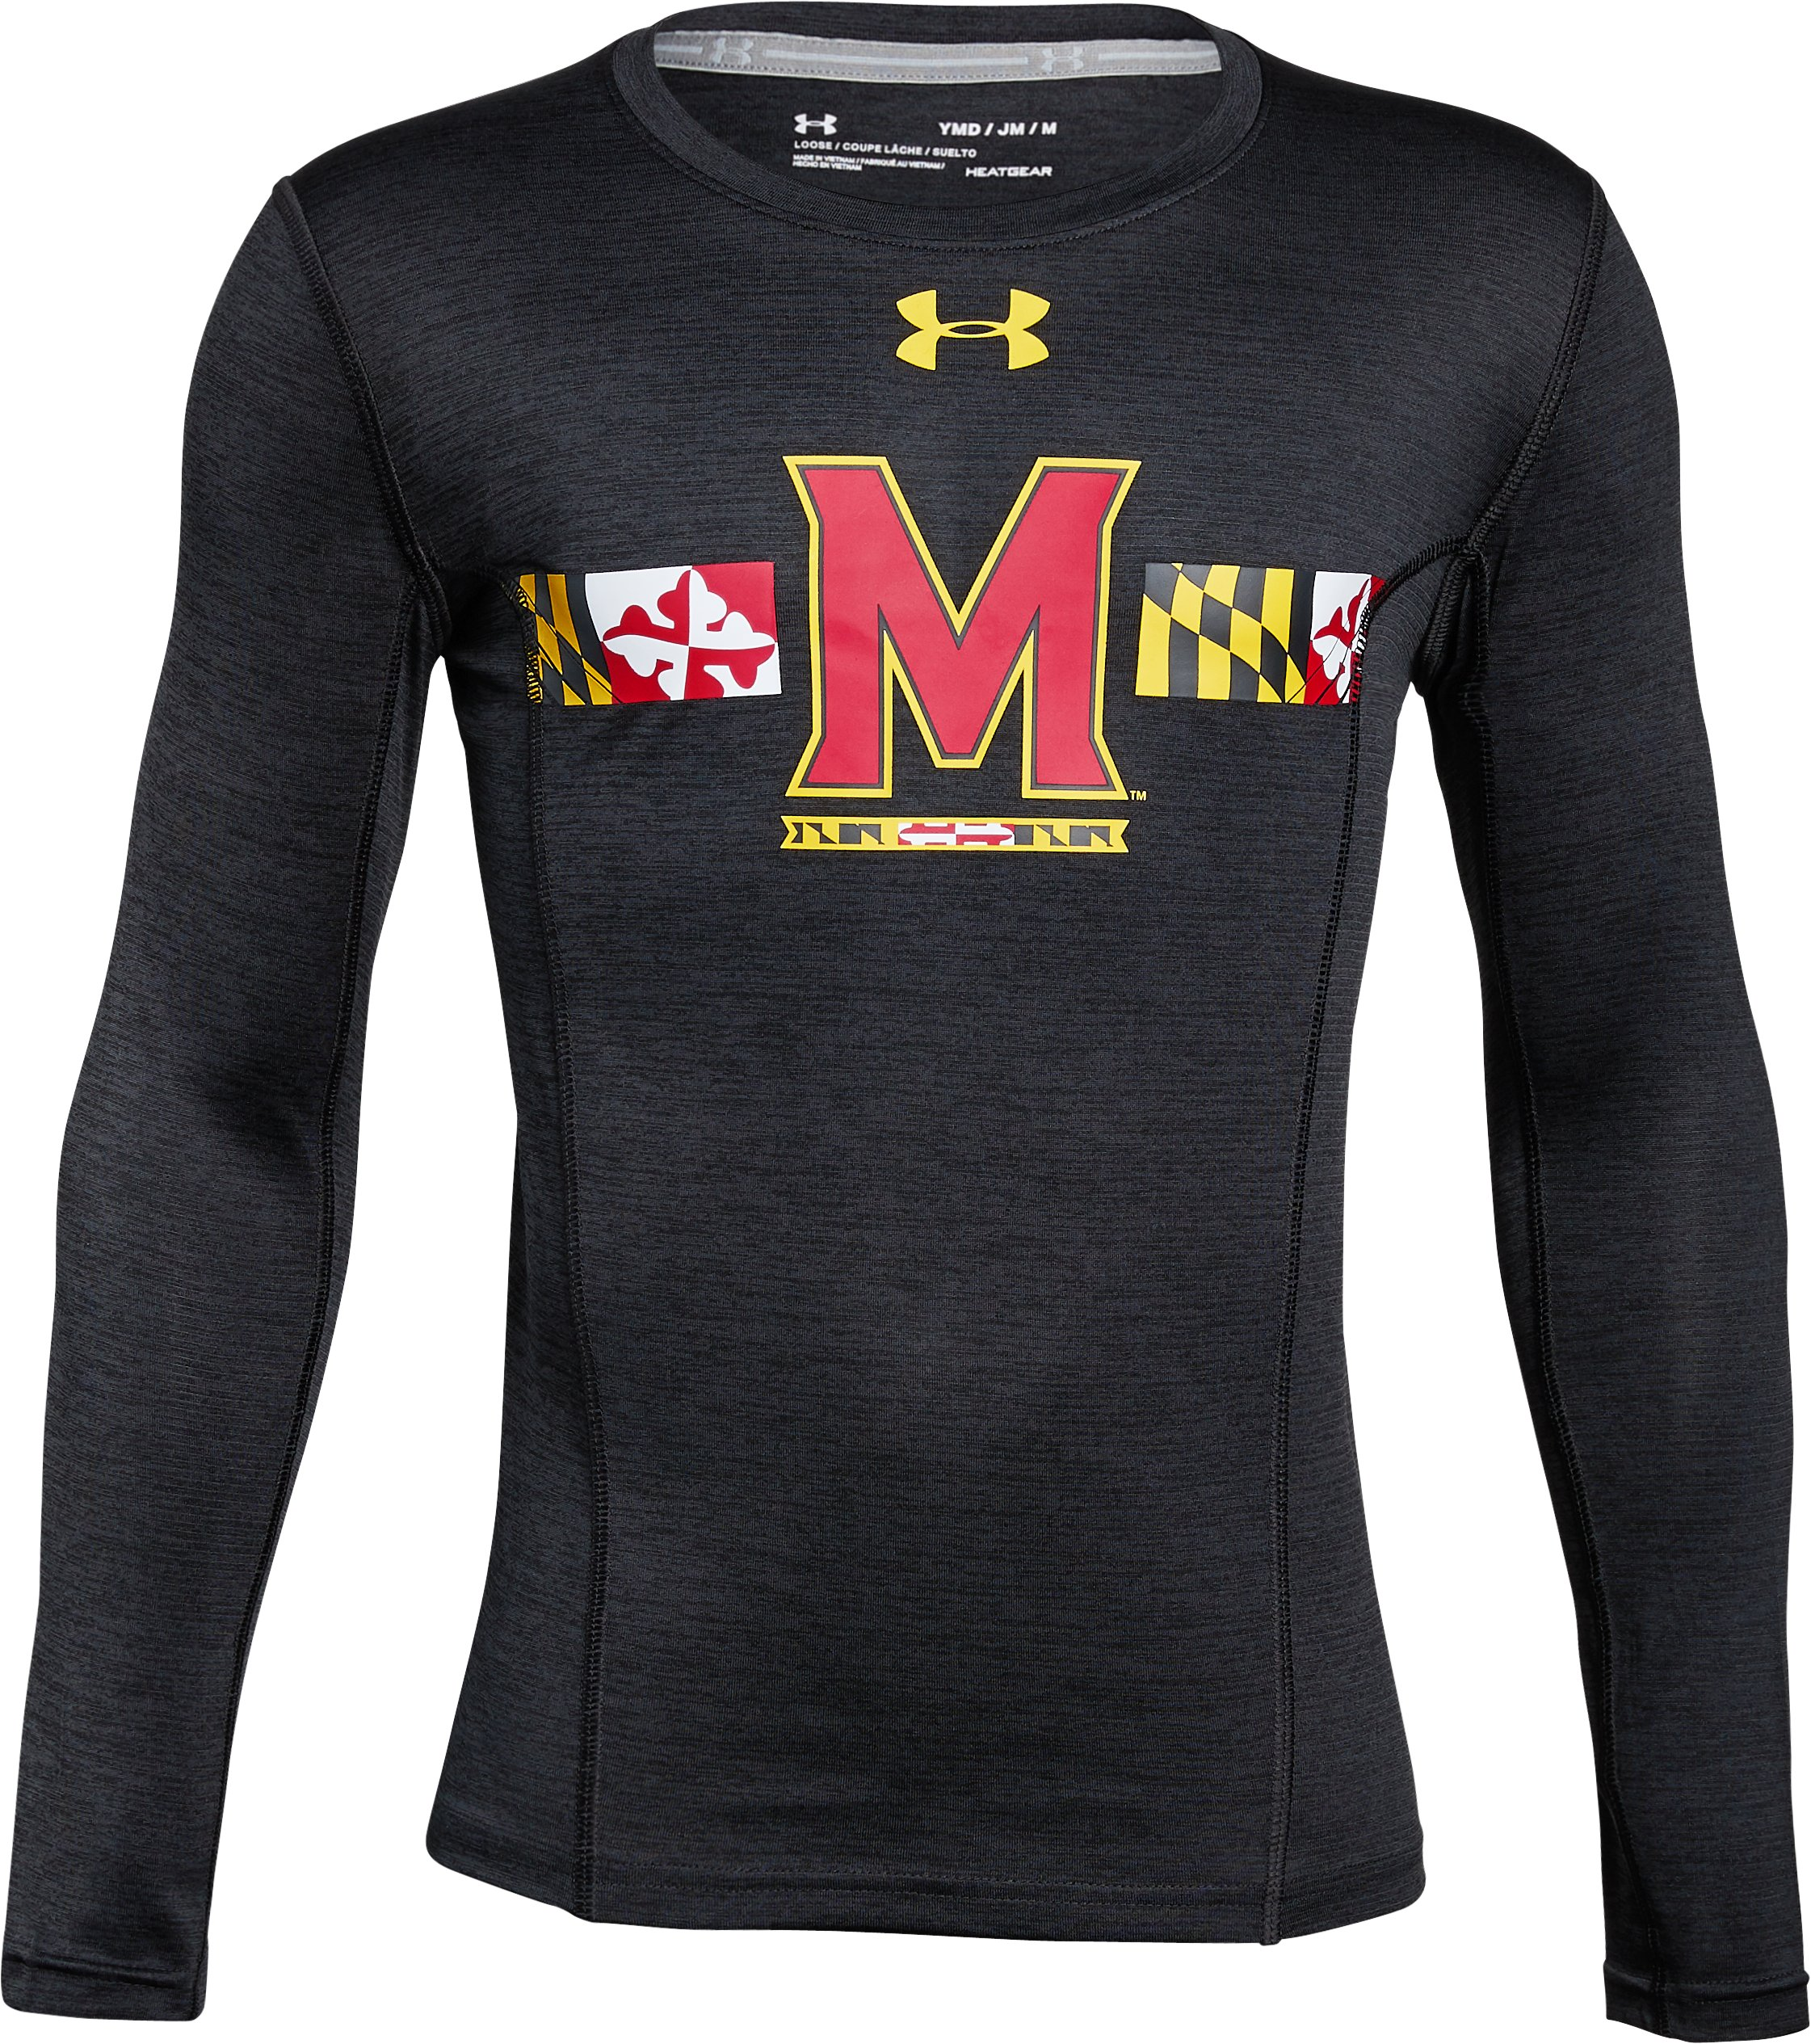 Boys' Maryland Long Sleeve Training T-Shirt, Black ,